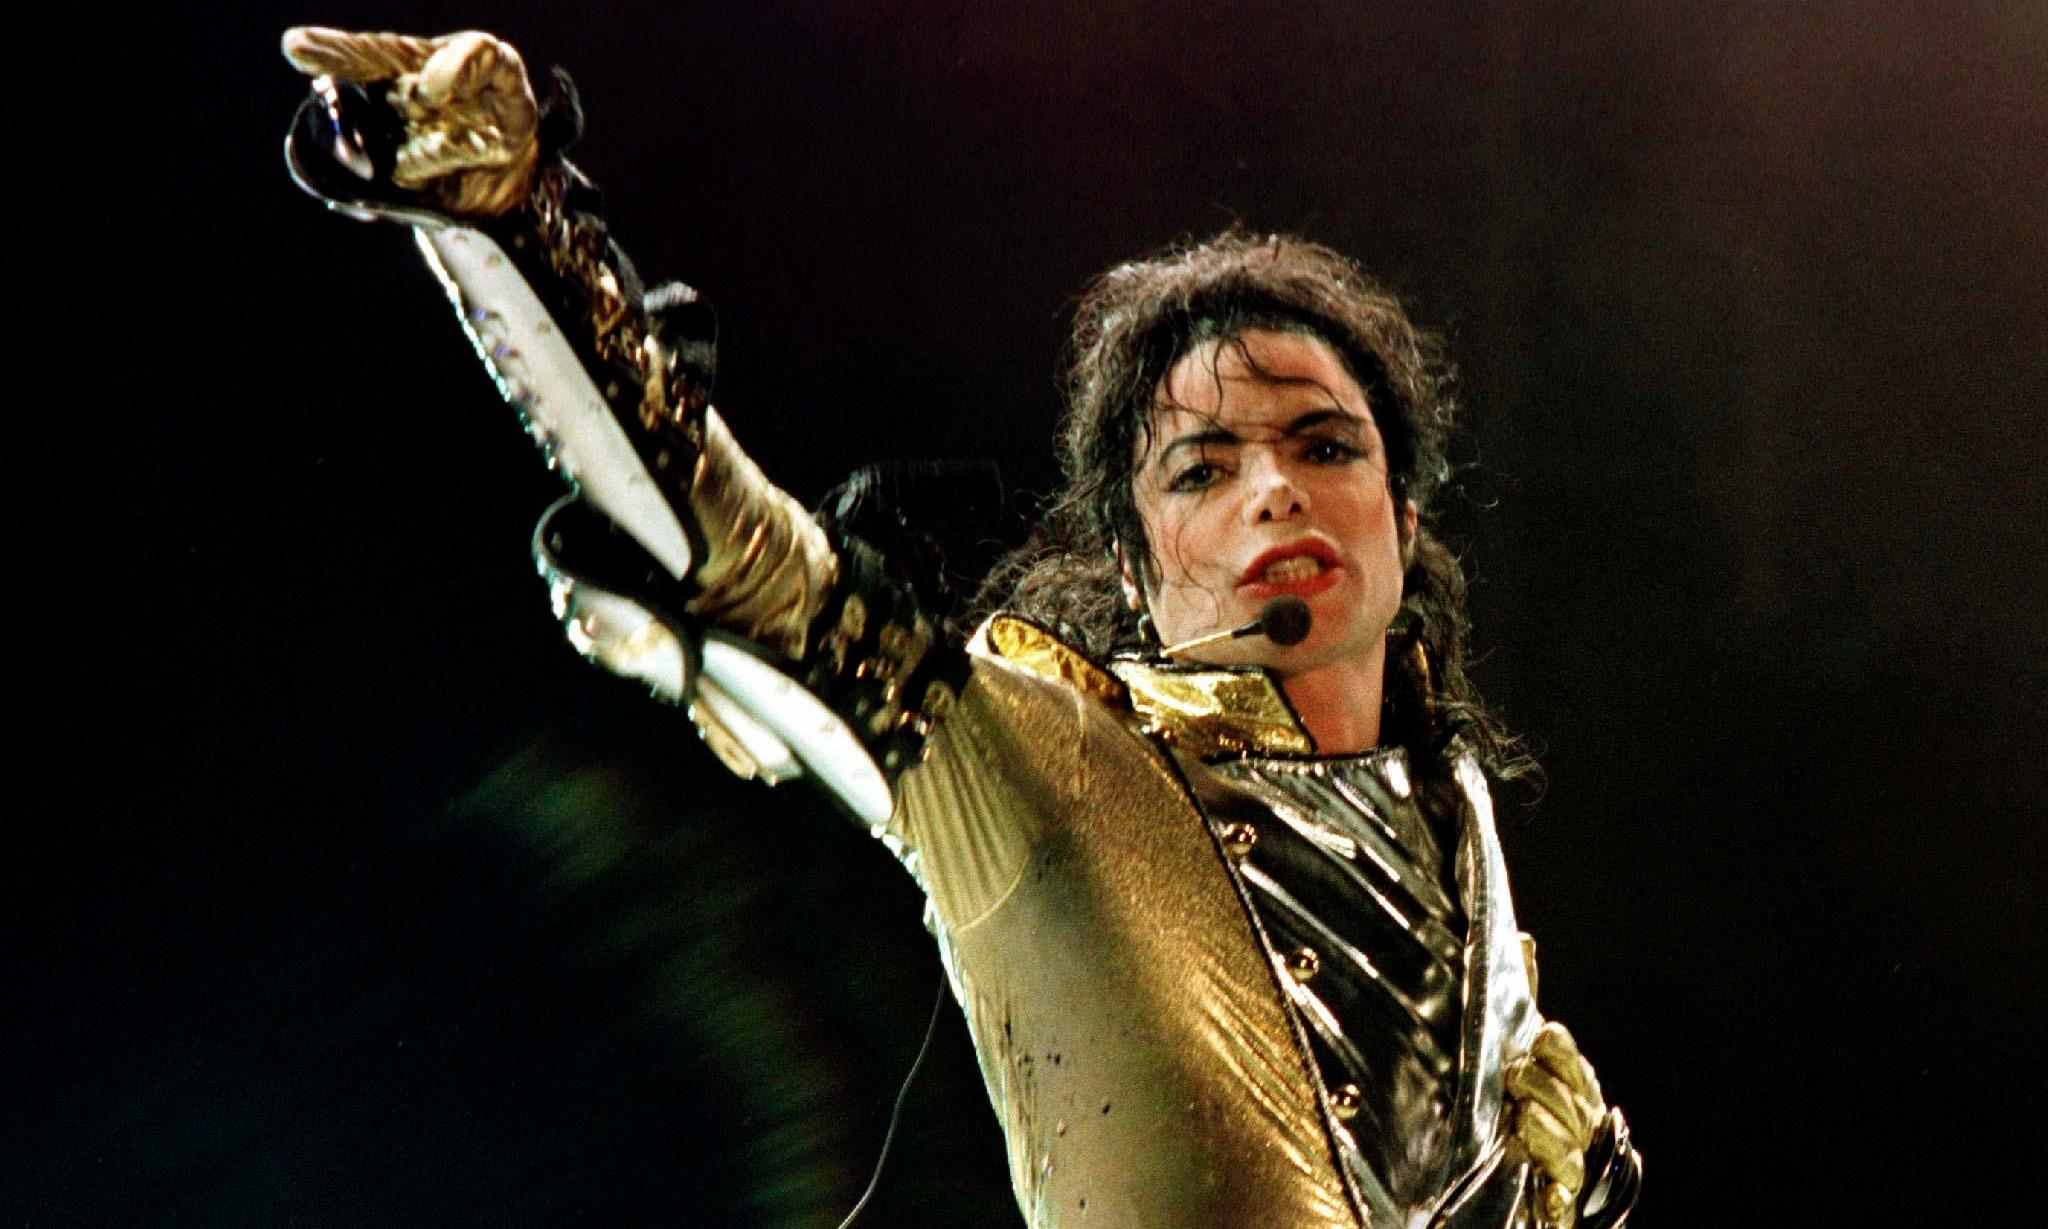 Michael Jackson estate suing HBO for $100m over tell-all documentary